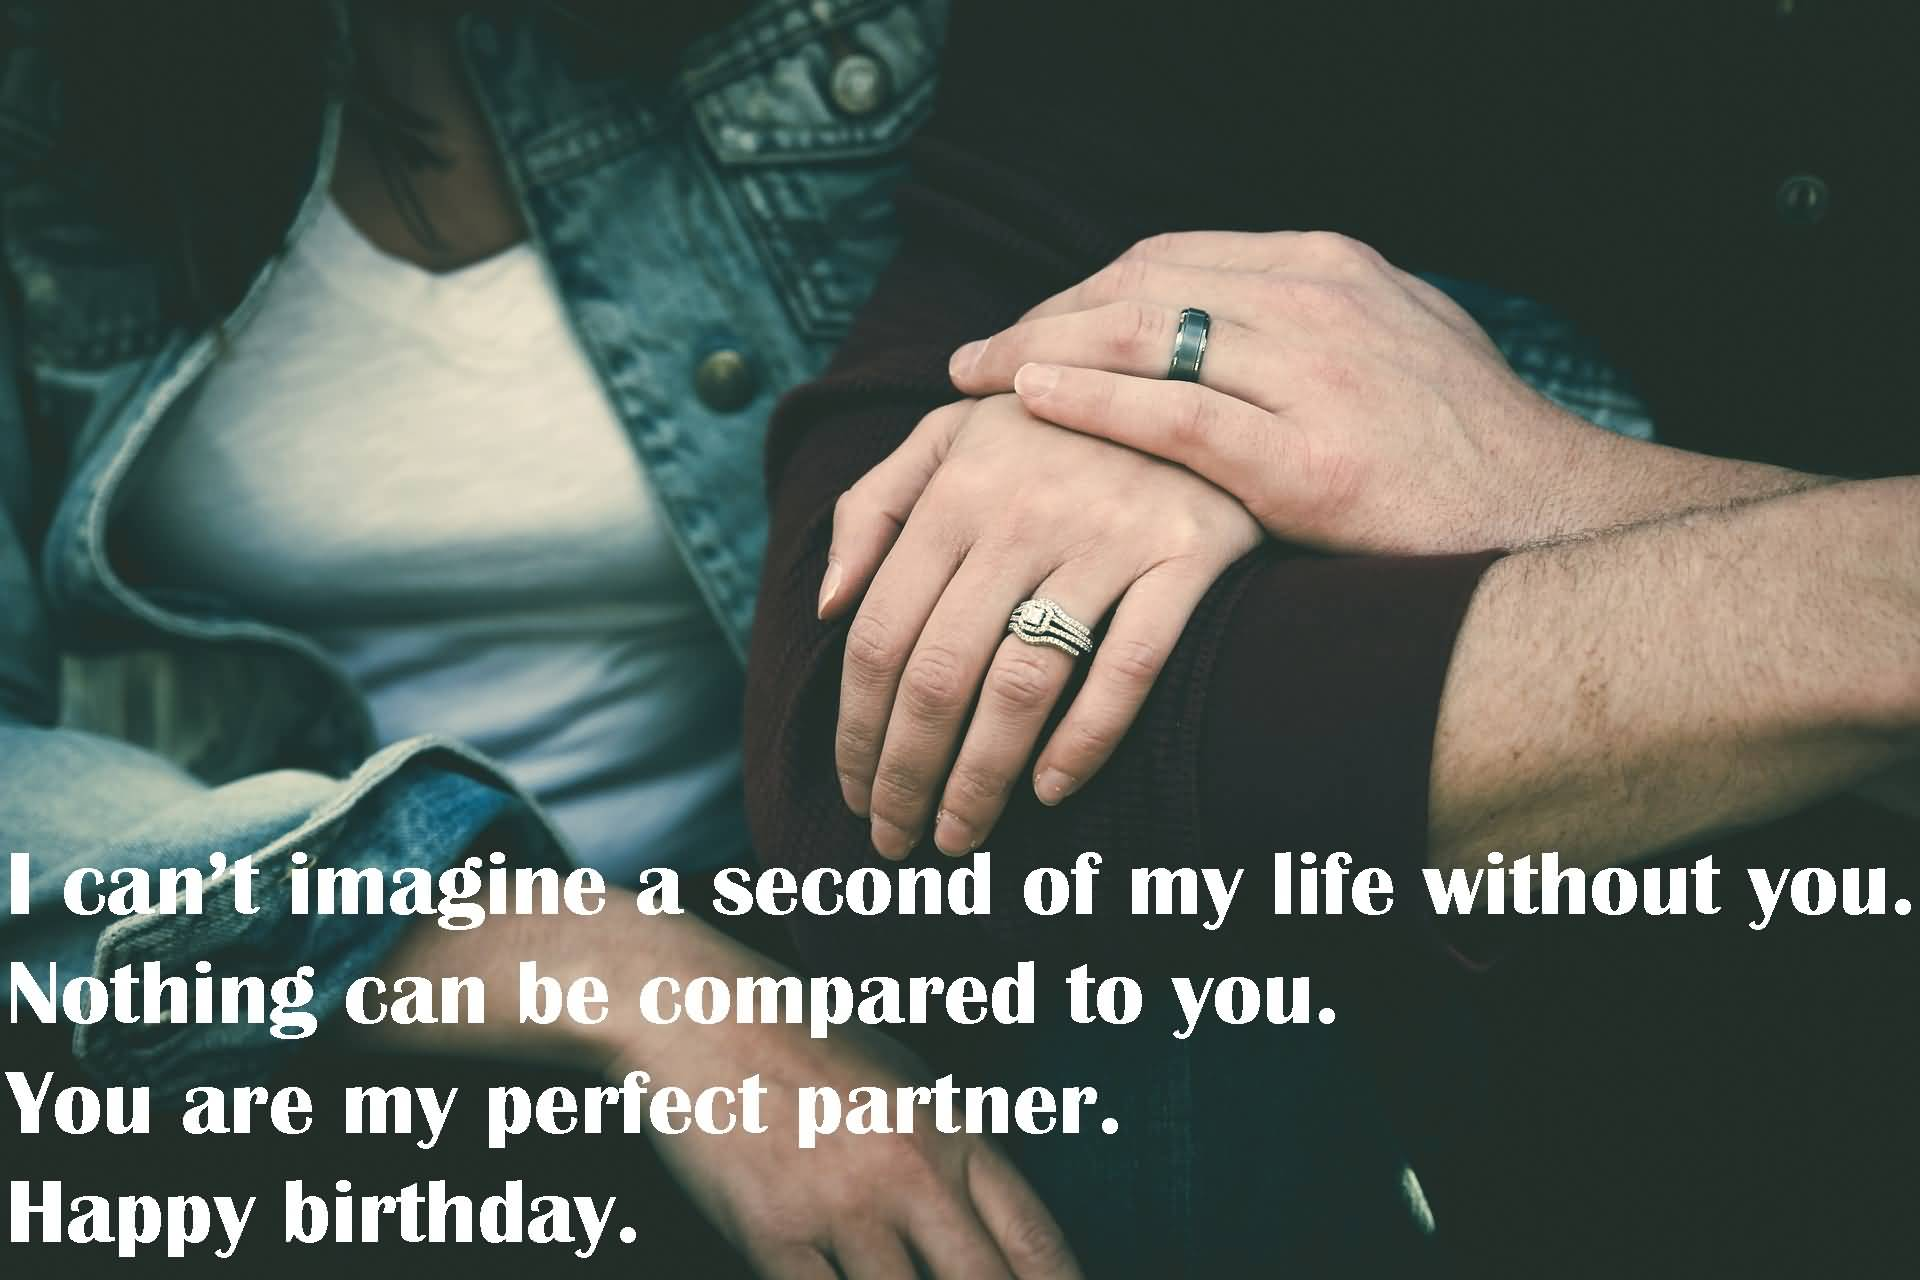 I can't imagine a second of my life without you. Wife birthday messages wish